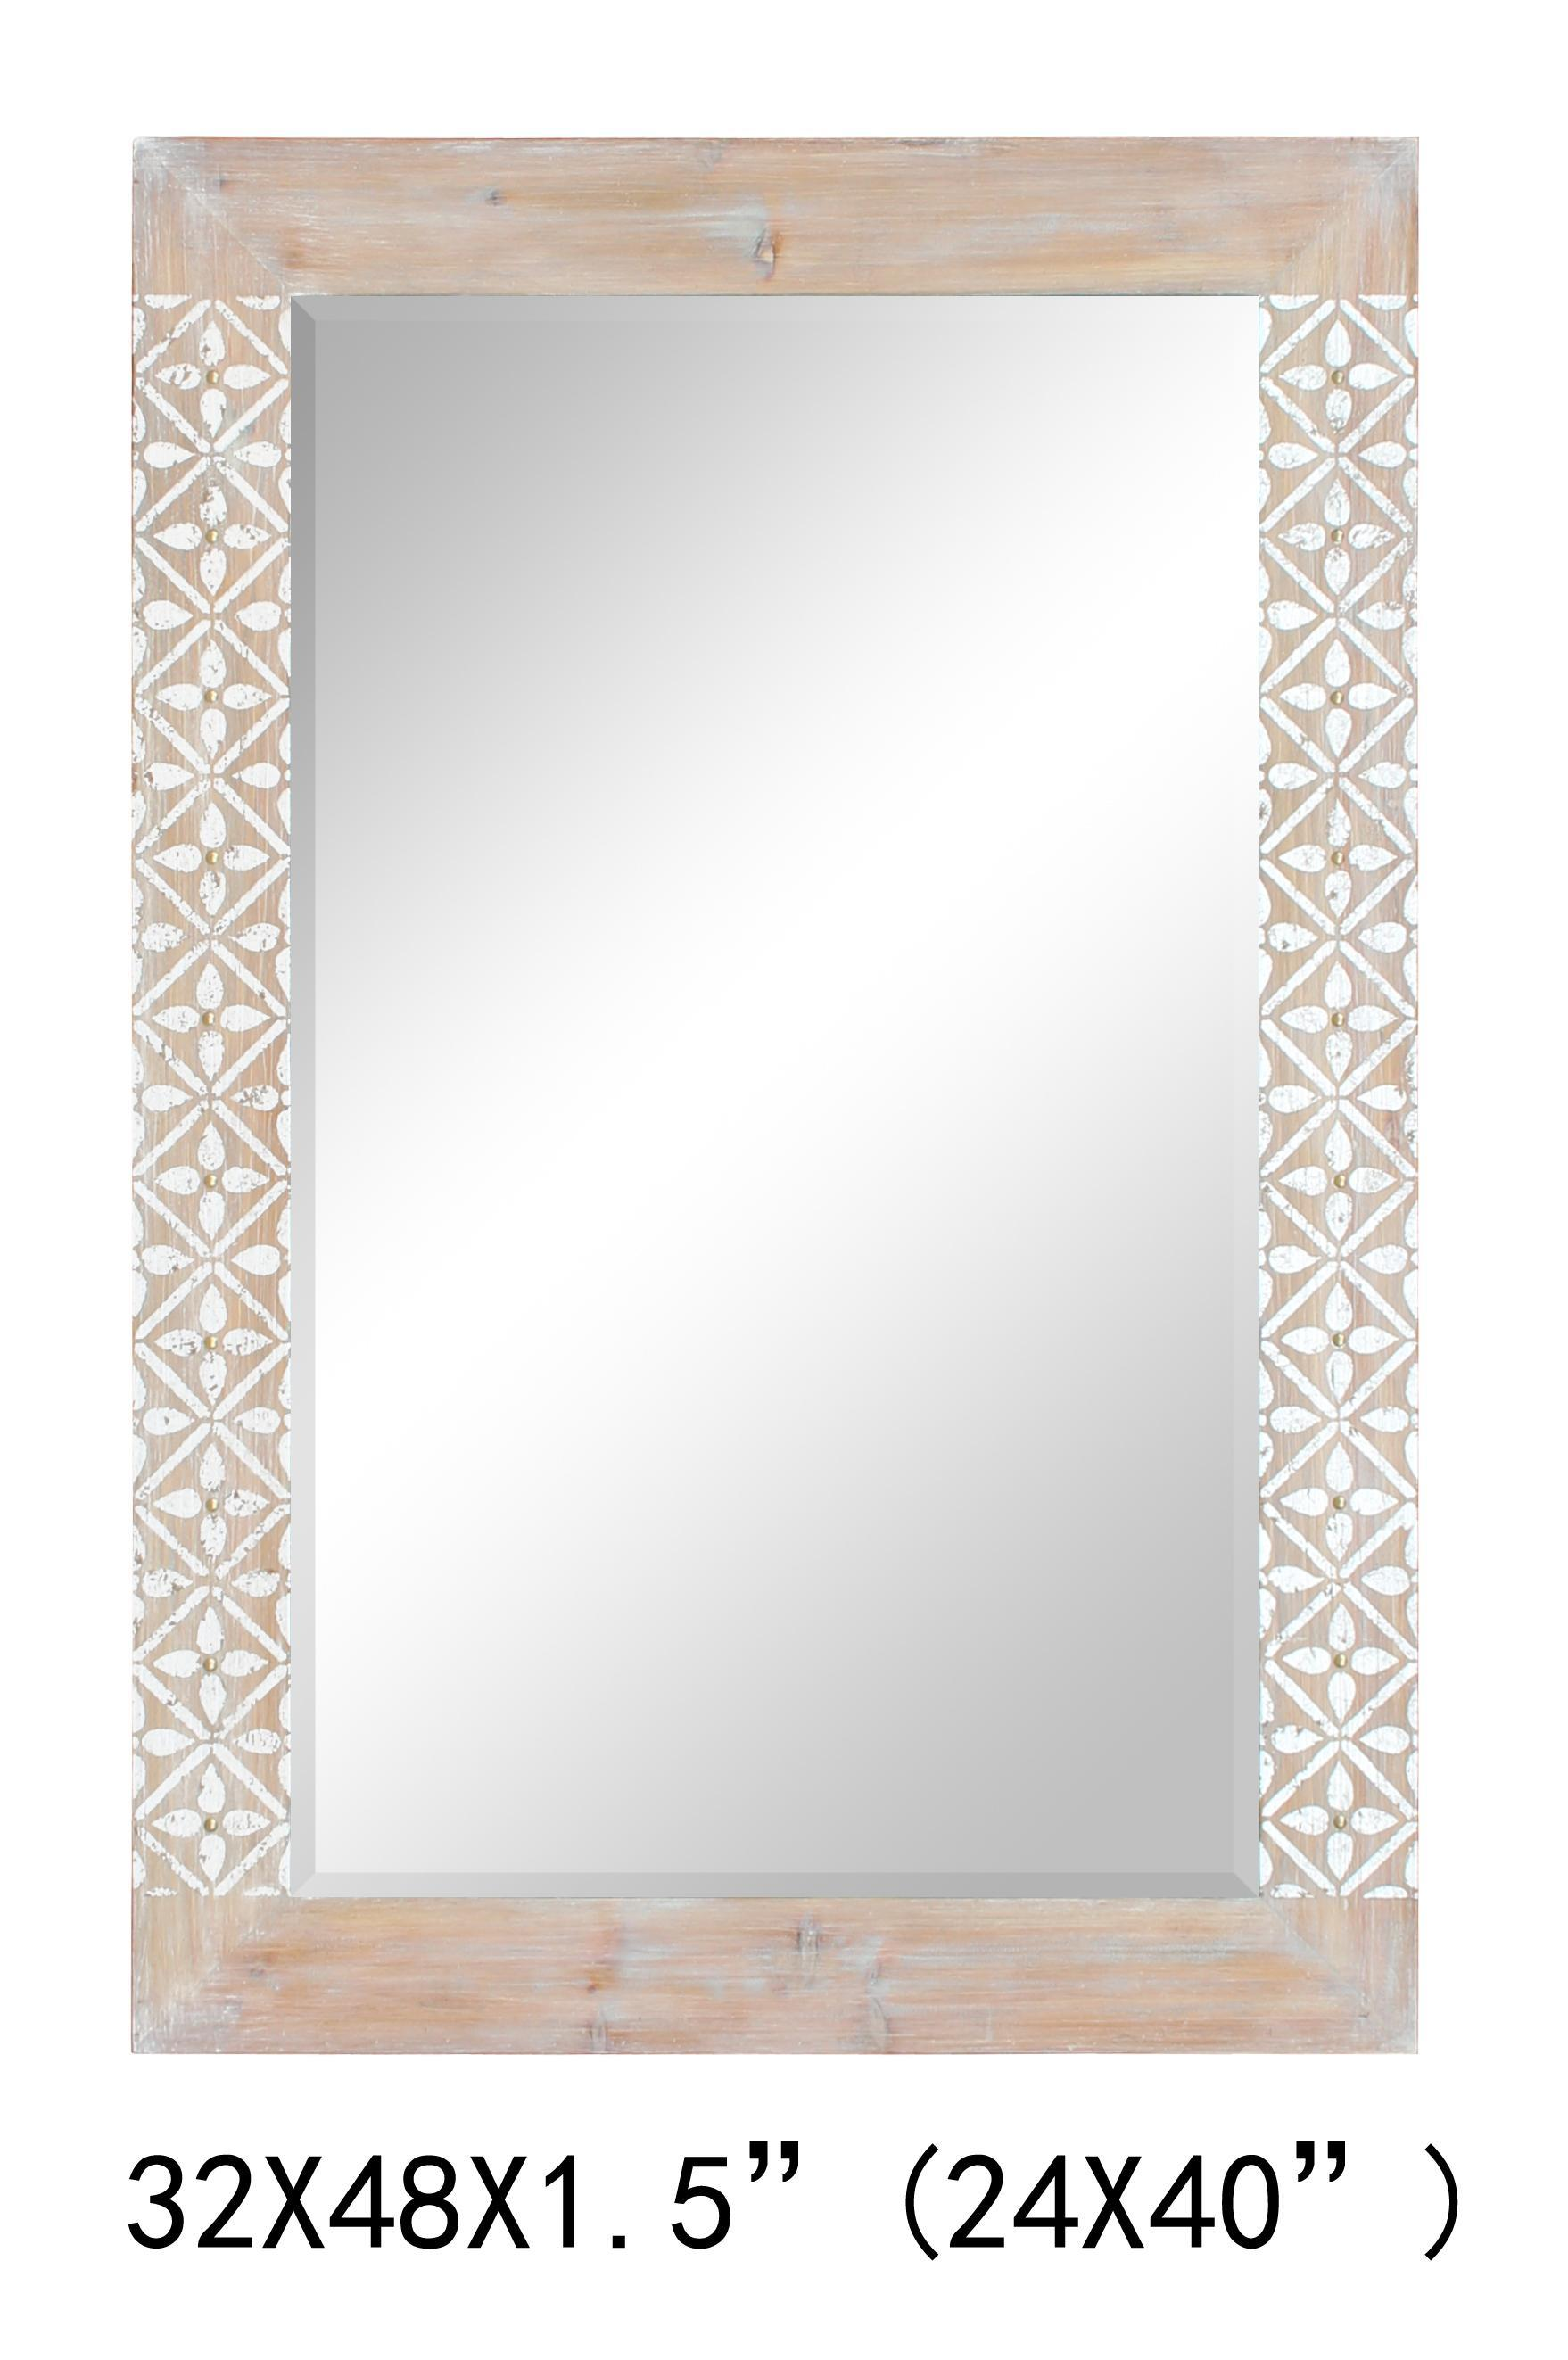 Decorative Silver Mirror for Wall Art Home Decoration